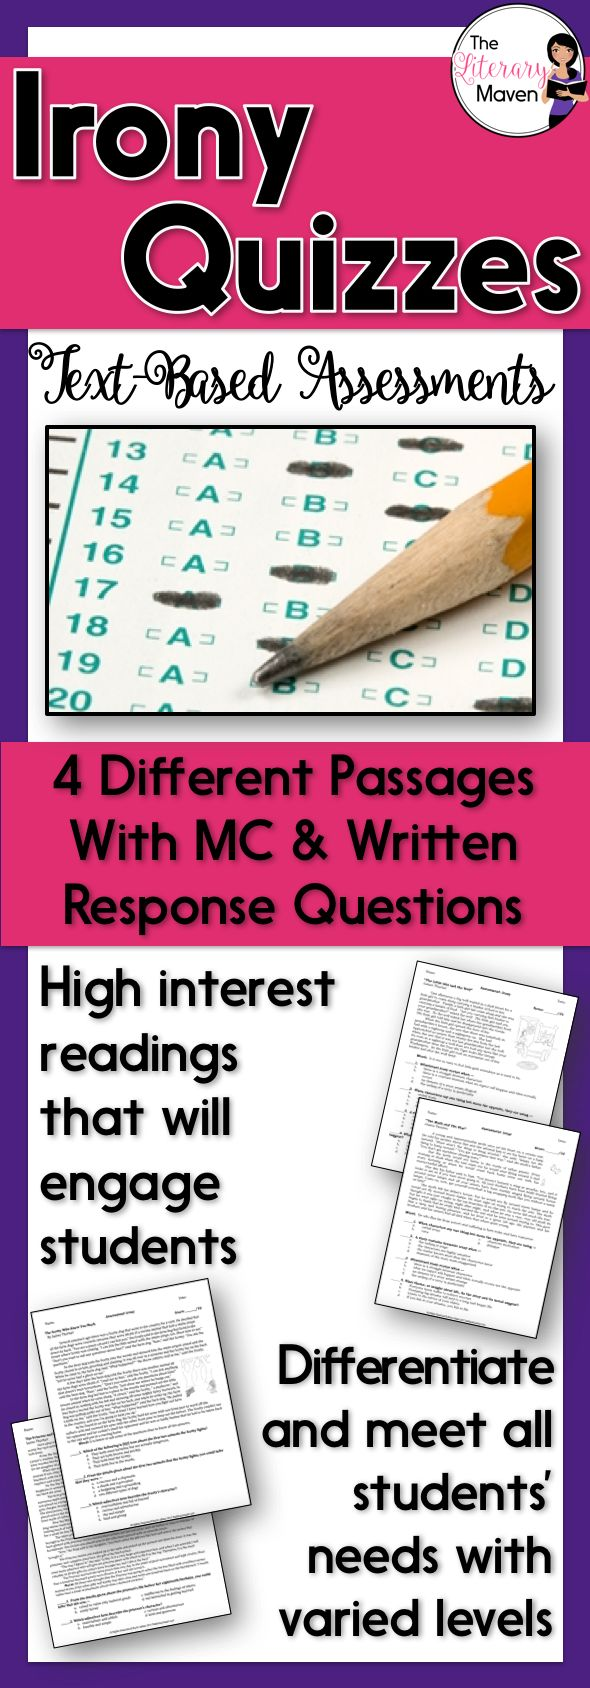 This is a set of text-based assessments that I use to assess my students' knowledge of irony. The variety of passages and text complexity levels allows you to retest students as needed and make accommodations for struggling readers. Each assessment includes a reading passage, 7 multiple-choice questions, and a short written response.  The skills and terms covered include: verbal irony, situational irony, dramatic irony, and making inferences.